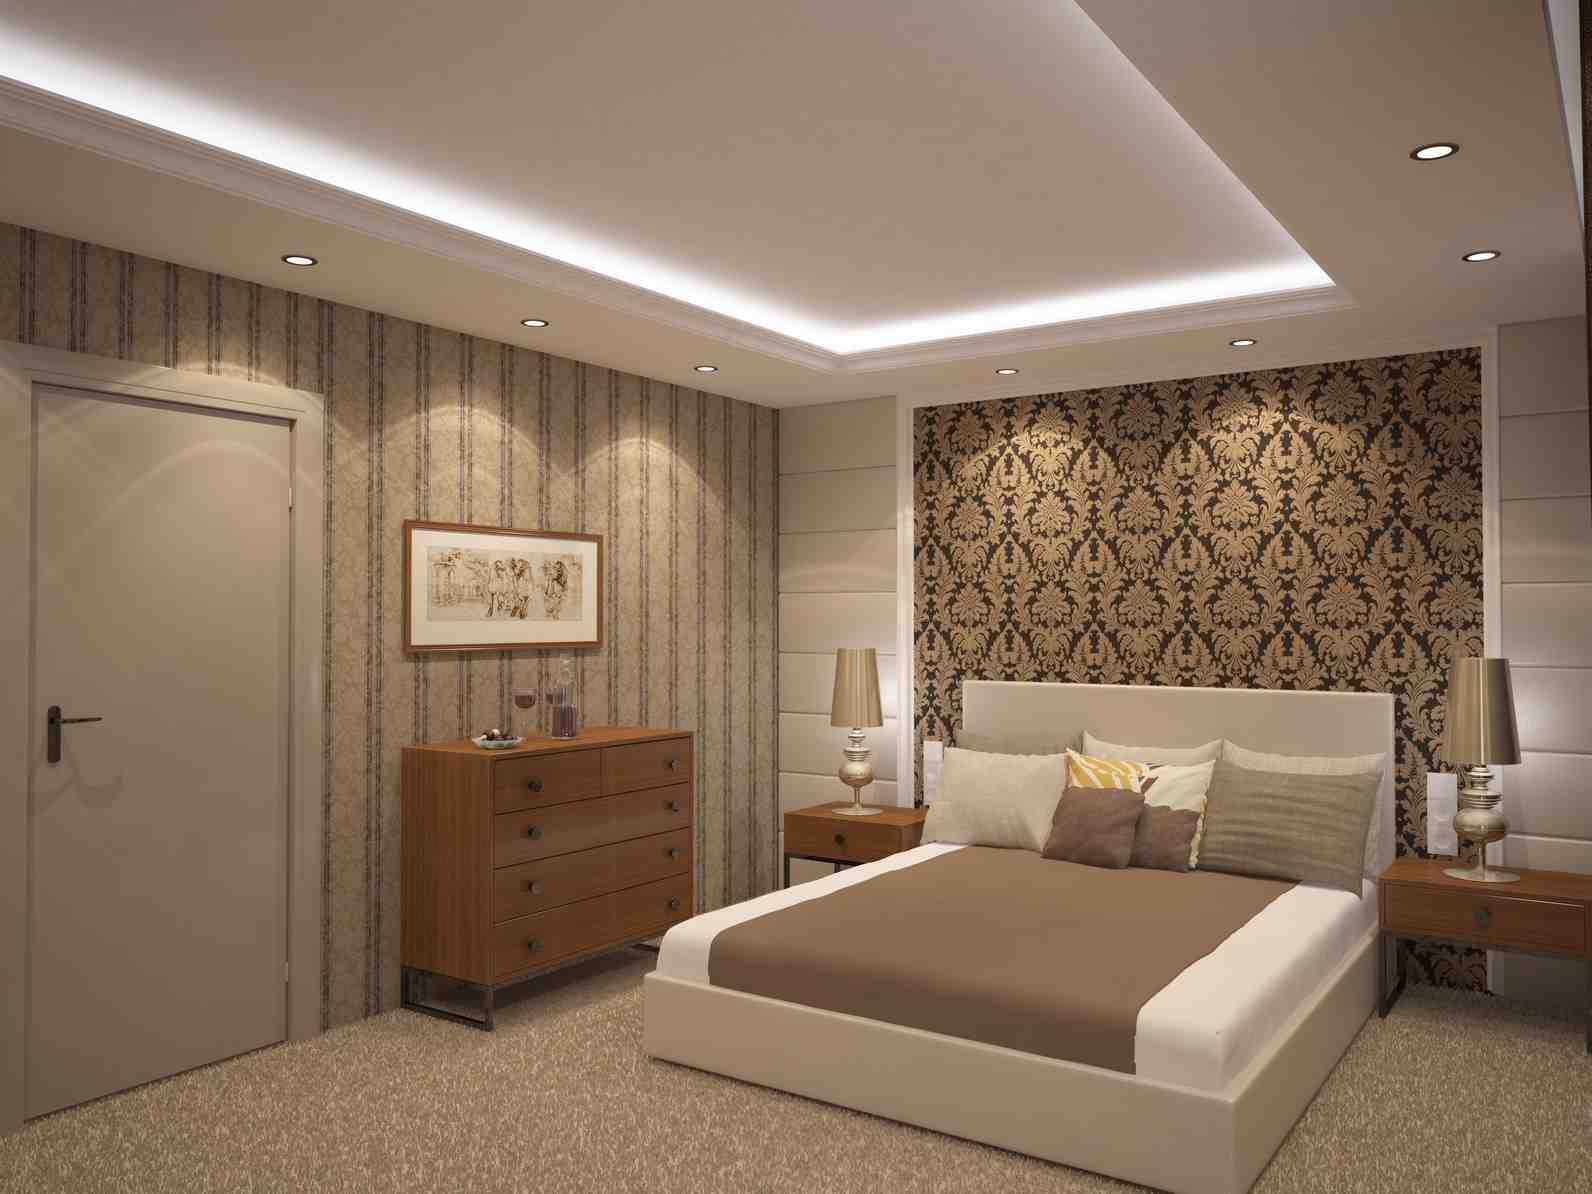 faux plafond pvc chambre solutions pour la d coration. Black Bedroom Furniture Sets. Home Design Ideas